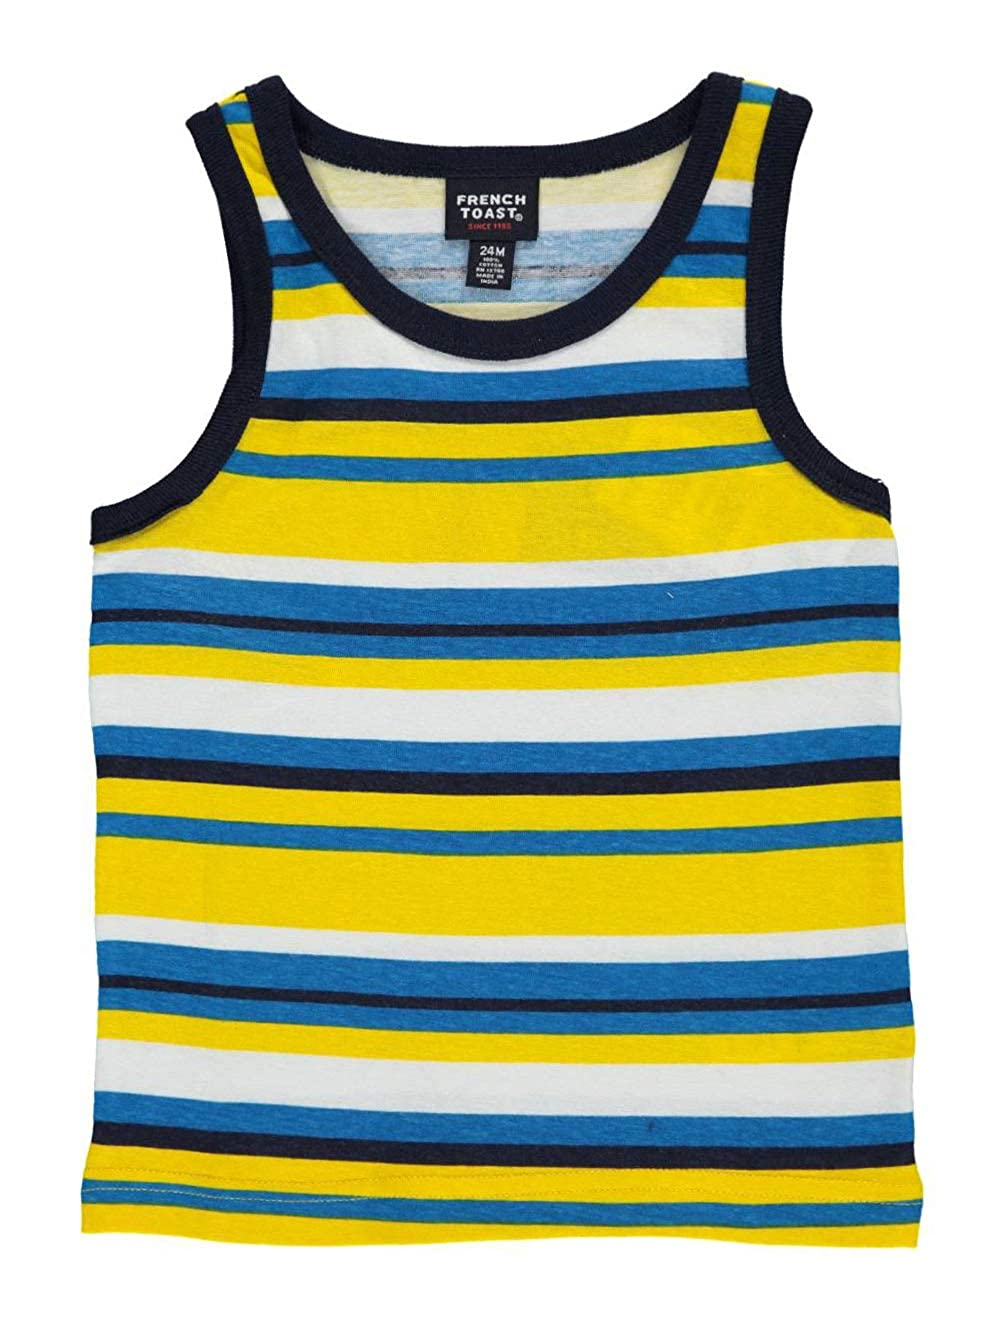 French Toast Boys' Striped Tank Top 12 months